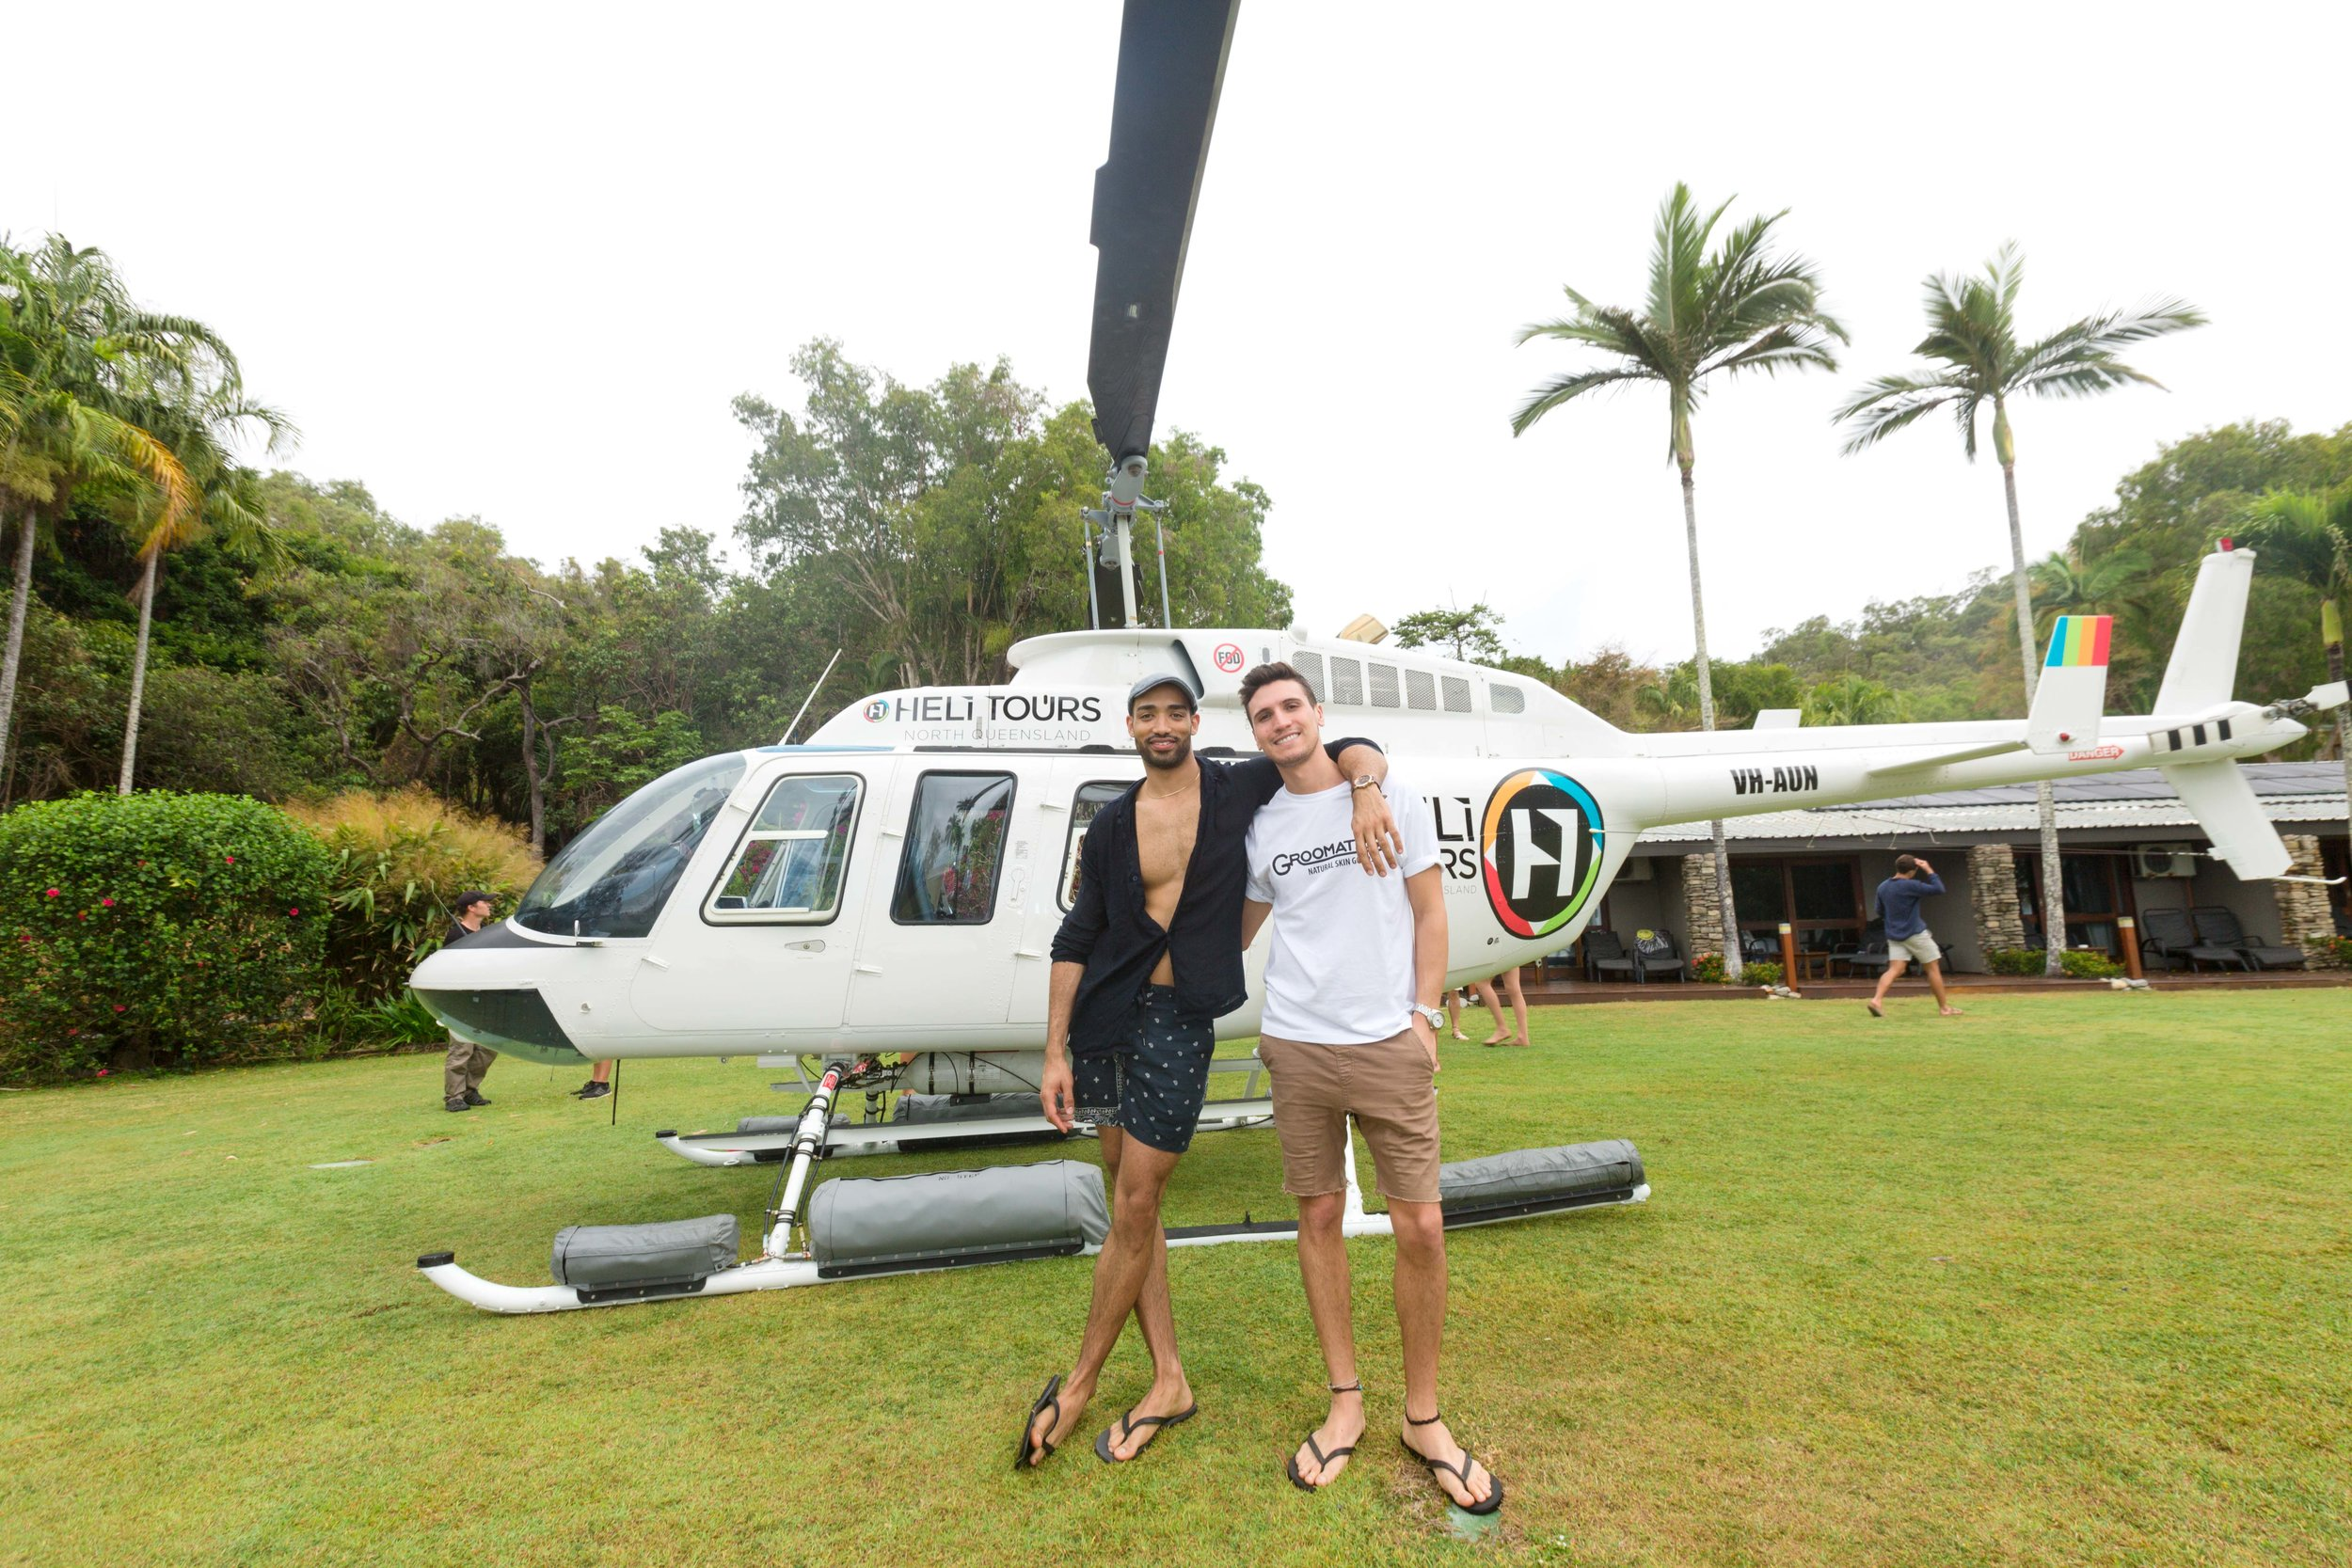 Helicopter transfer - Airport to Beachfront dependent on weather conditions